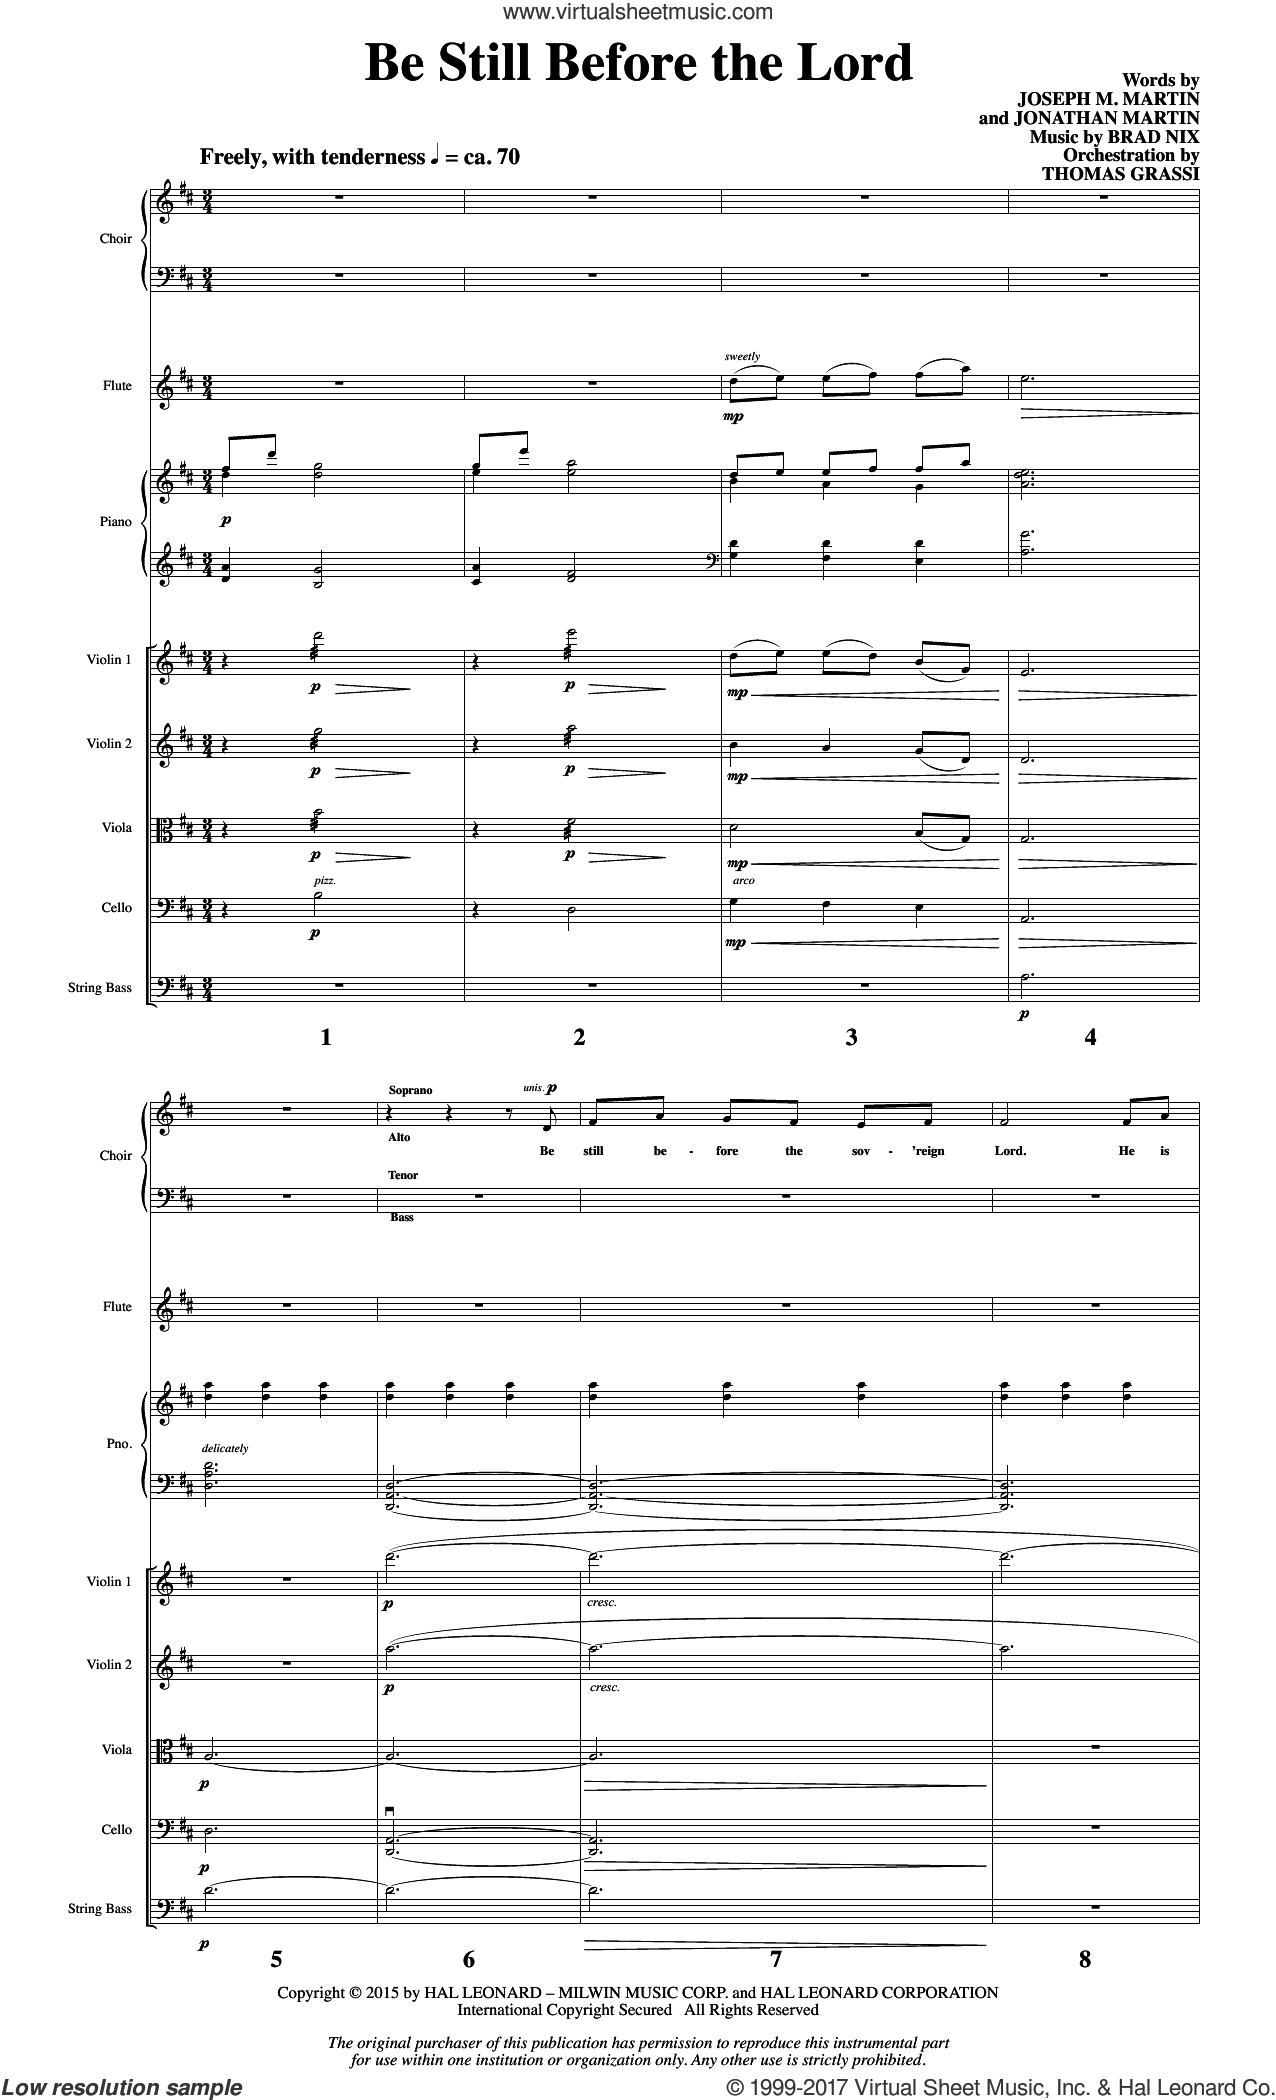 Be Still Before the Lord (COMPLETE) sheet music for orchestra/band by Joseph M. Martin, Brad Nix and Jonathan Martin, intermediate